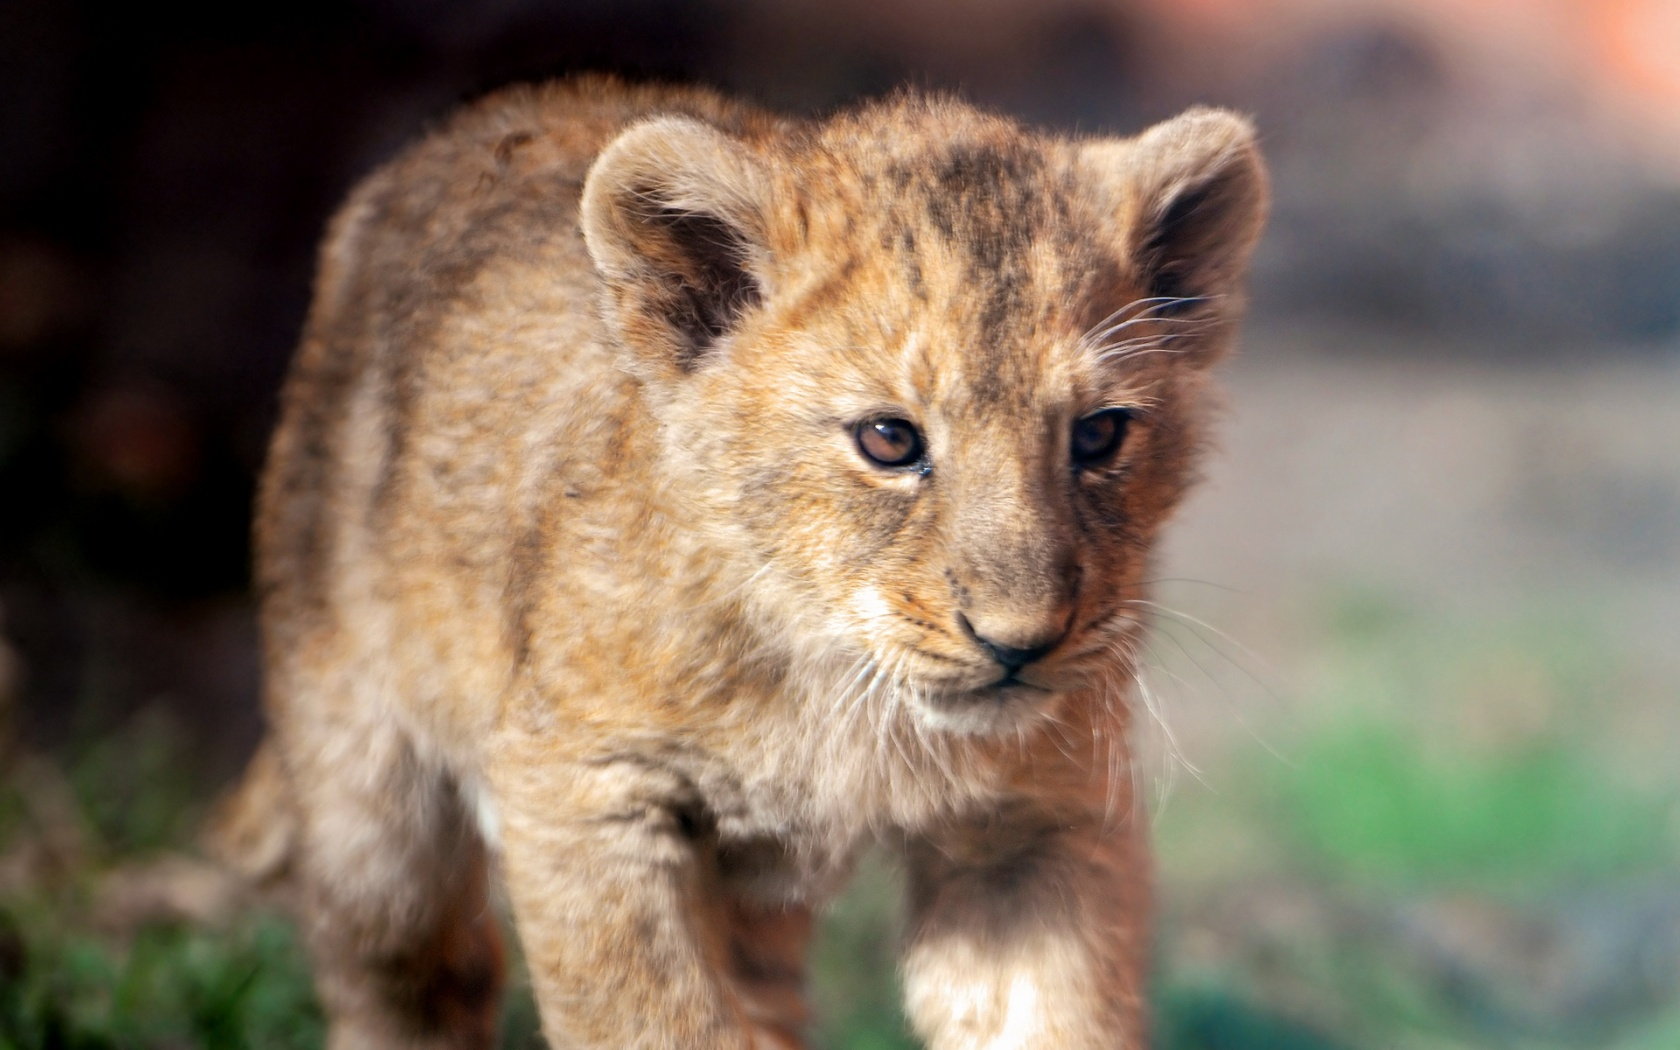 Cute lion cub   Lion cubs Wallpaper 36286253 1680x1050